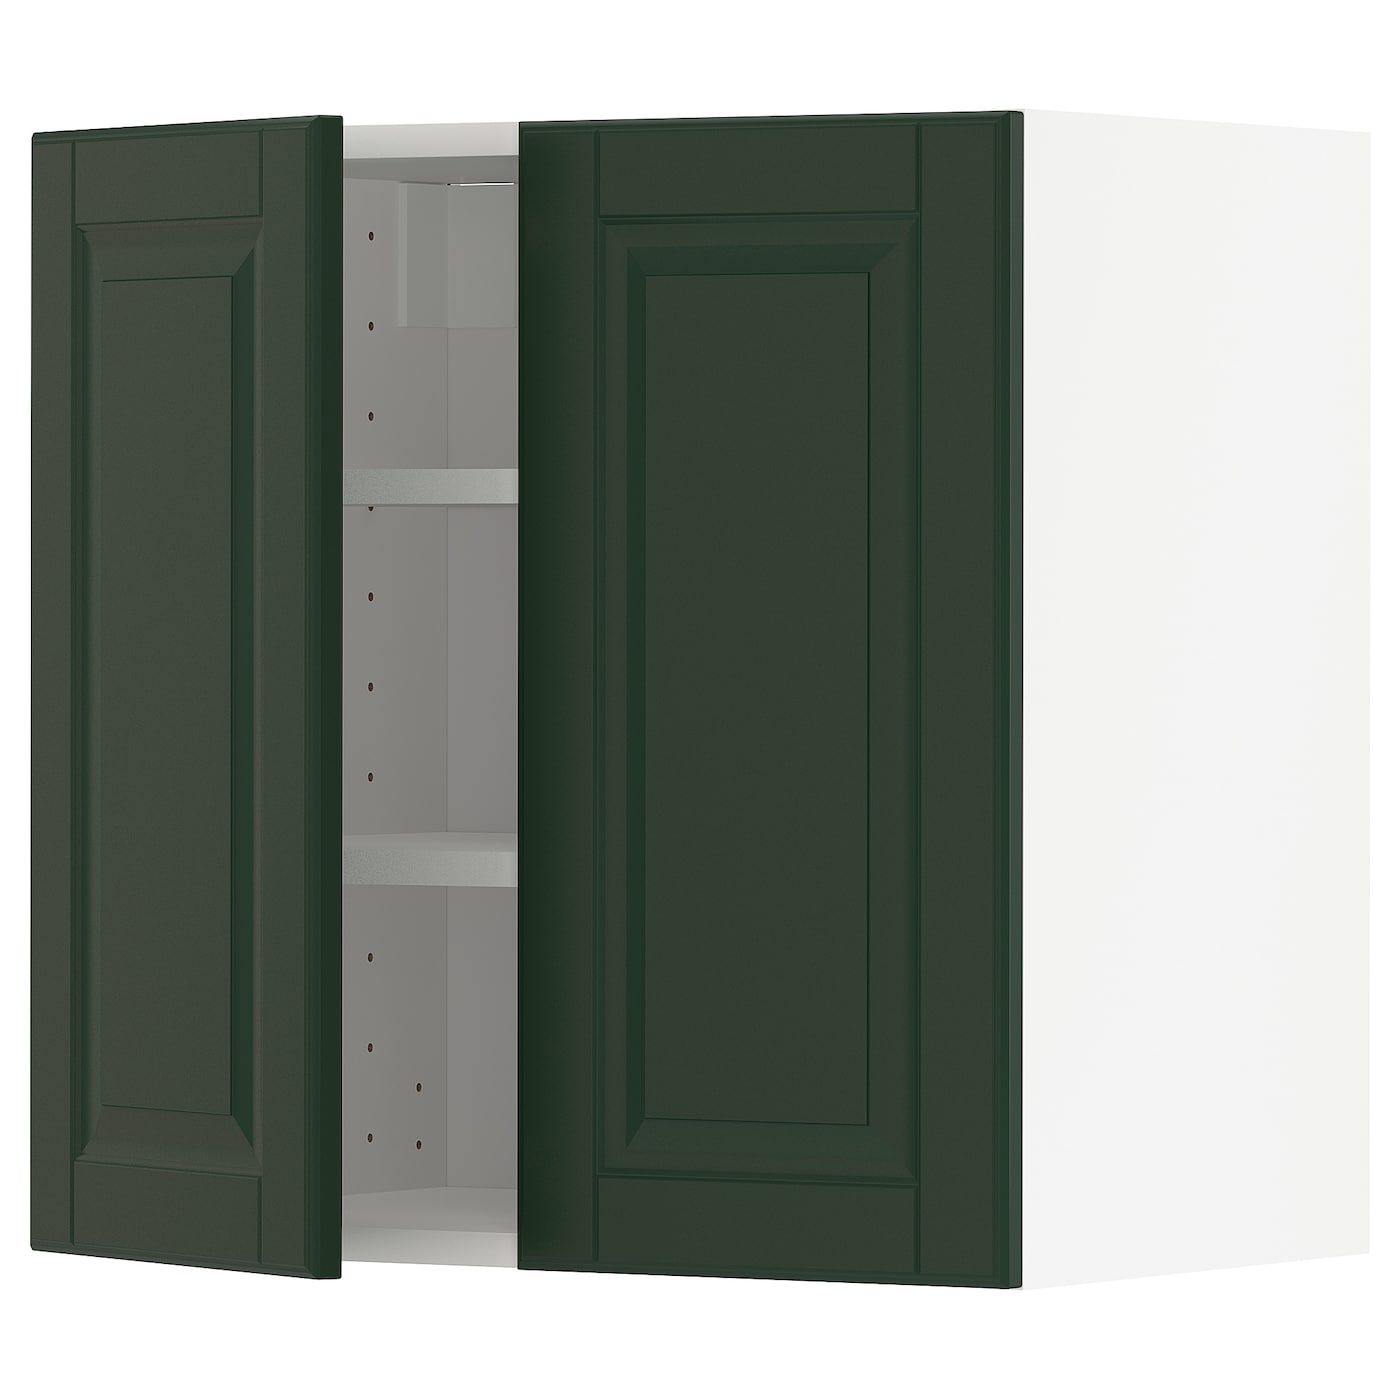 Wall Cabinet With Shelves 2 Doors Metod White Bodbyn Dark Green